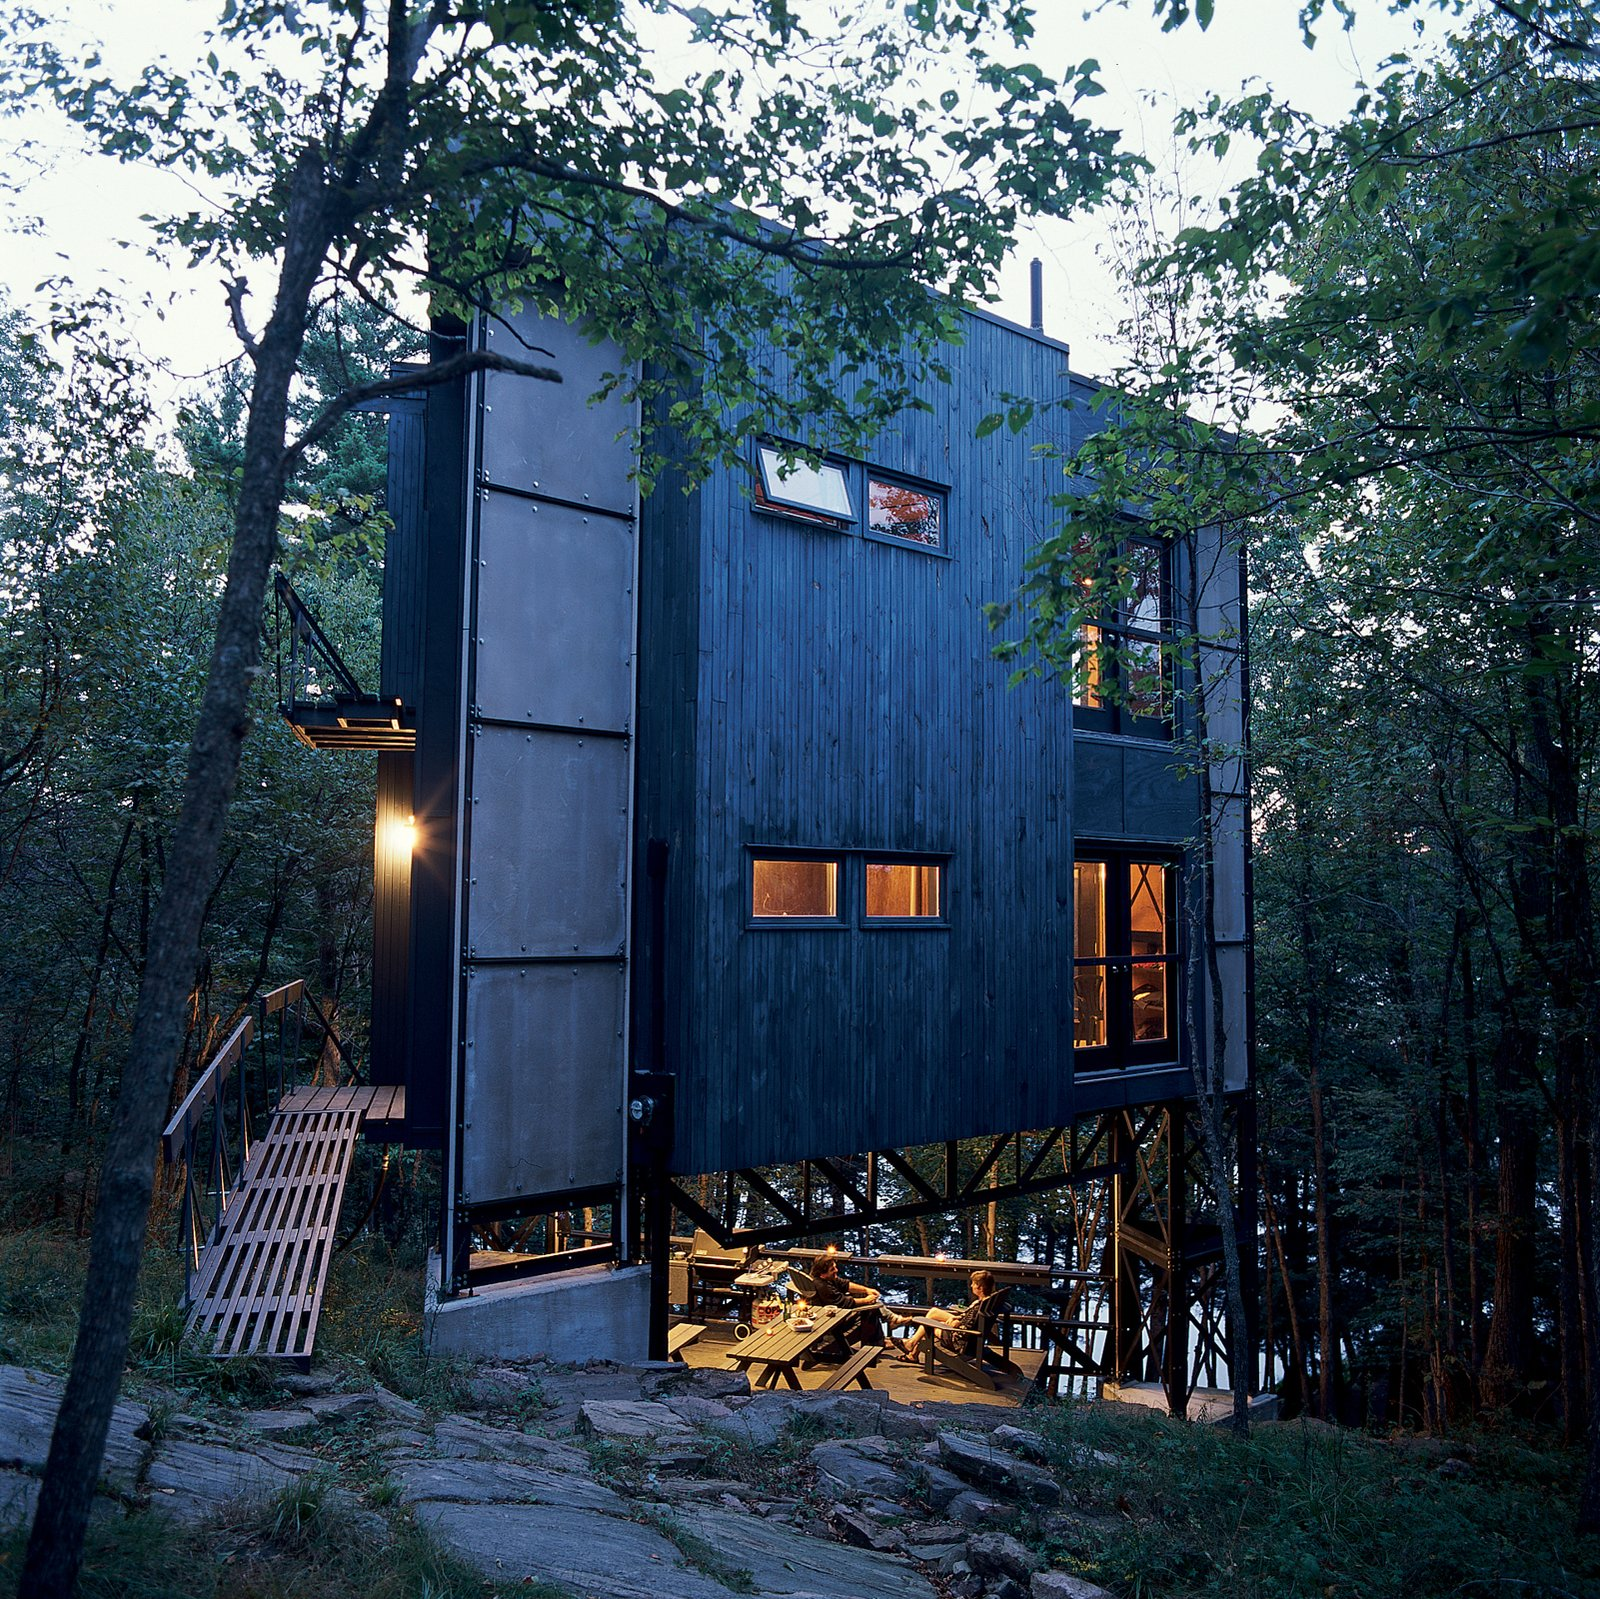 Playfully christened La Tour des Bébelles, the three-story, steel-framed tower has shown itself to be the ideal summer retreat: secluded, perfectly positioned near Ontario's Otter Lake, and encouraging of its inhabitants to spend time outdoors.  Cabins & Hideouts by Stephen Blake from A Modern Dark Tower